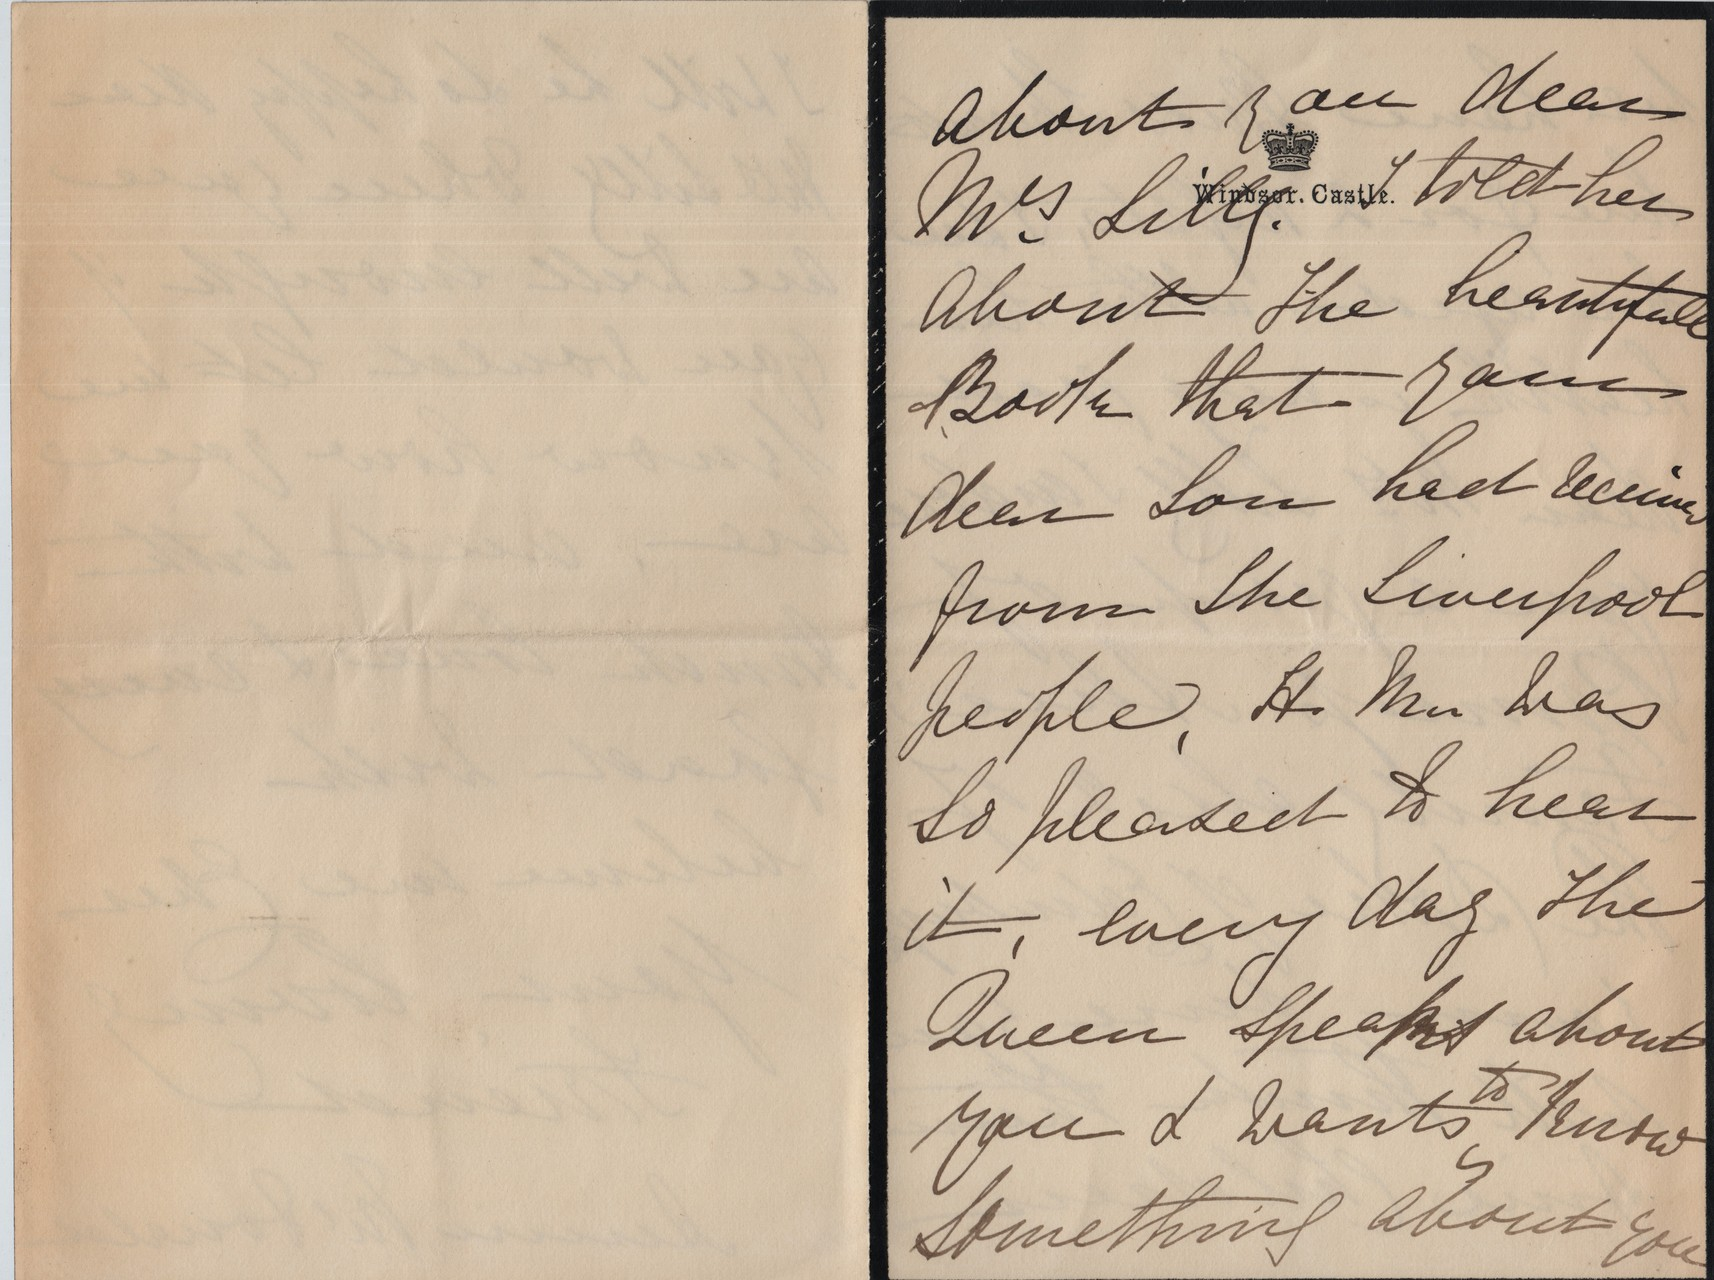 1880 July 8th Annie MacDonald to MDL